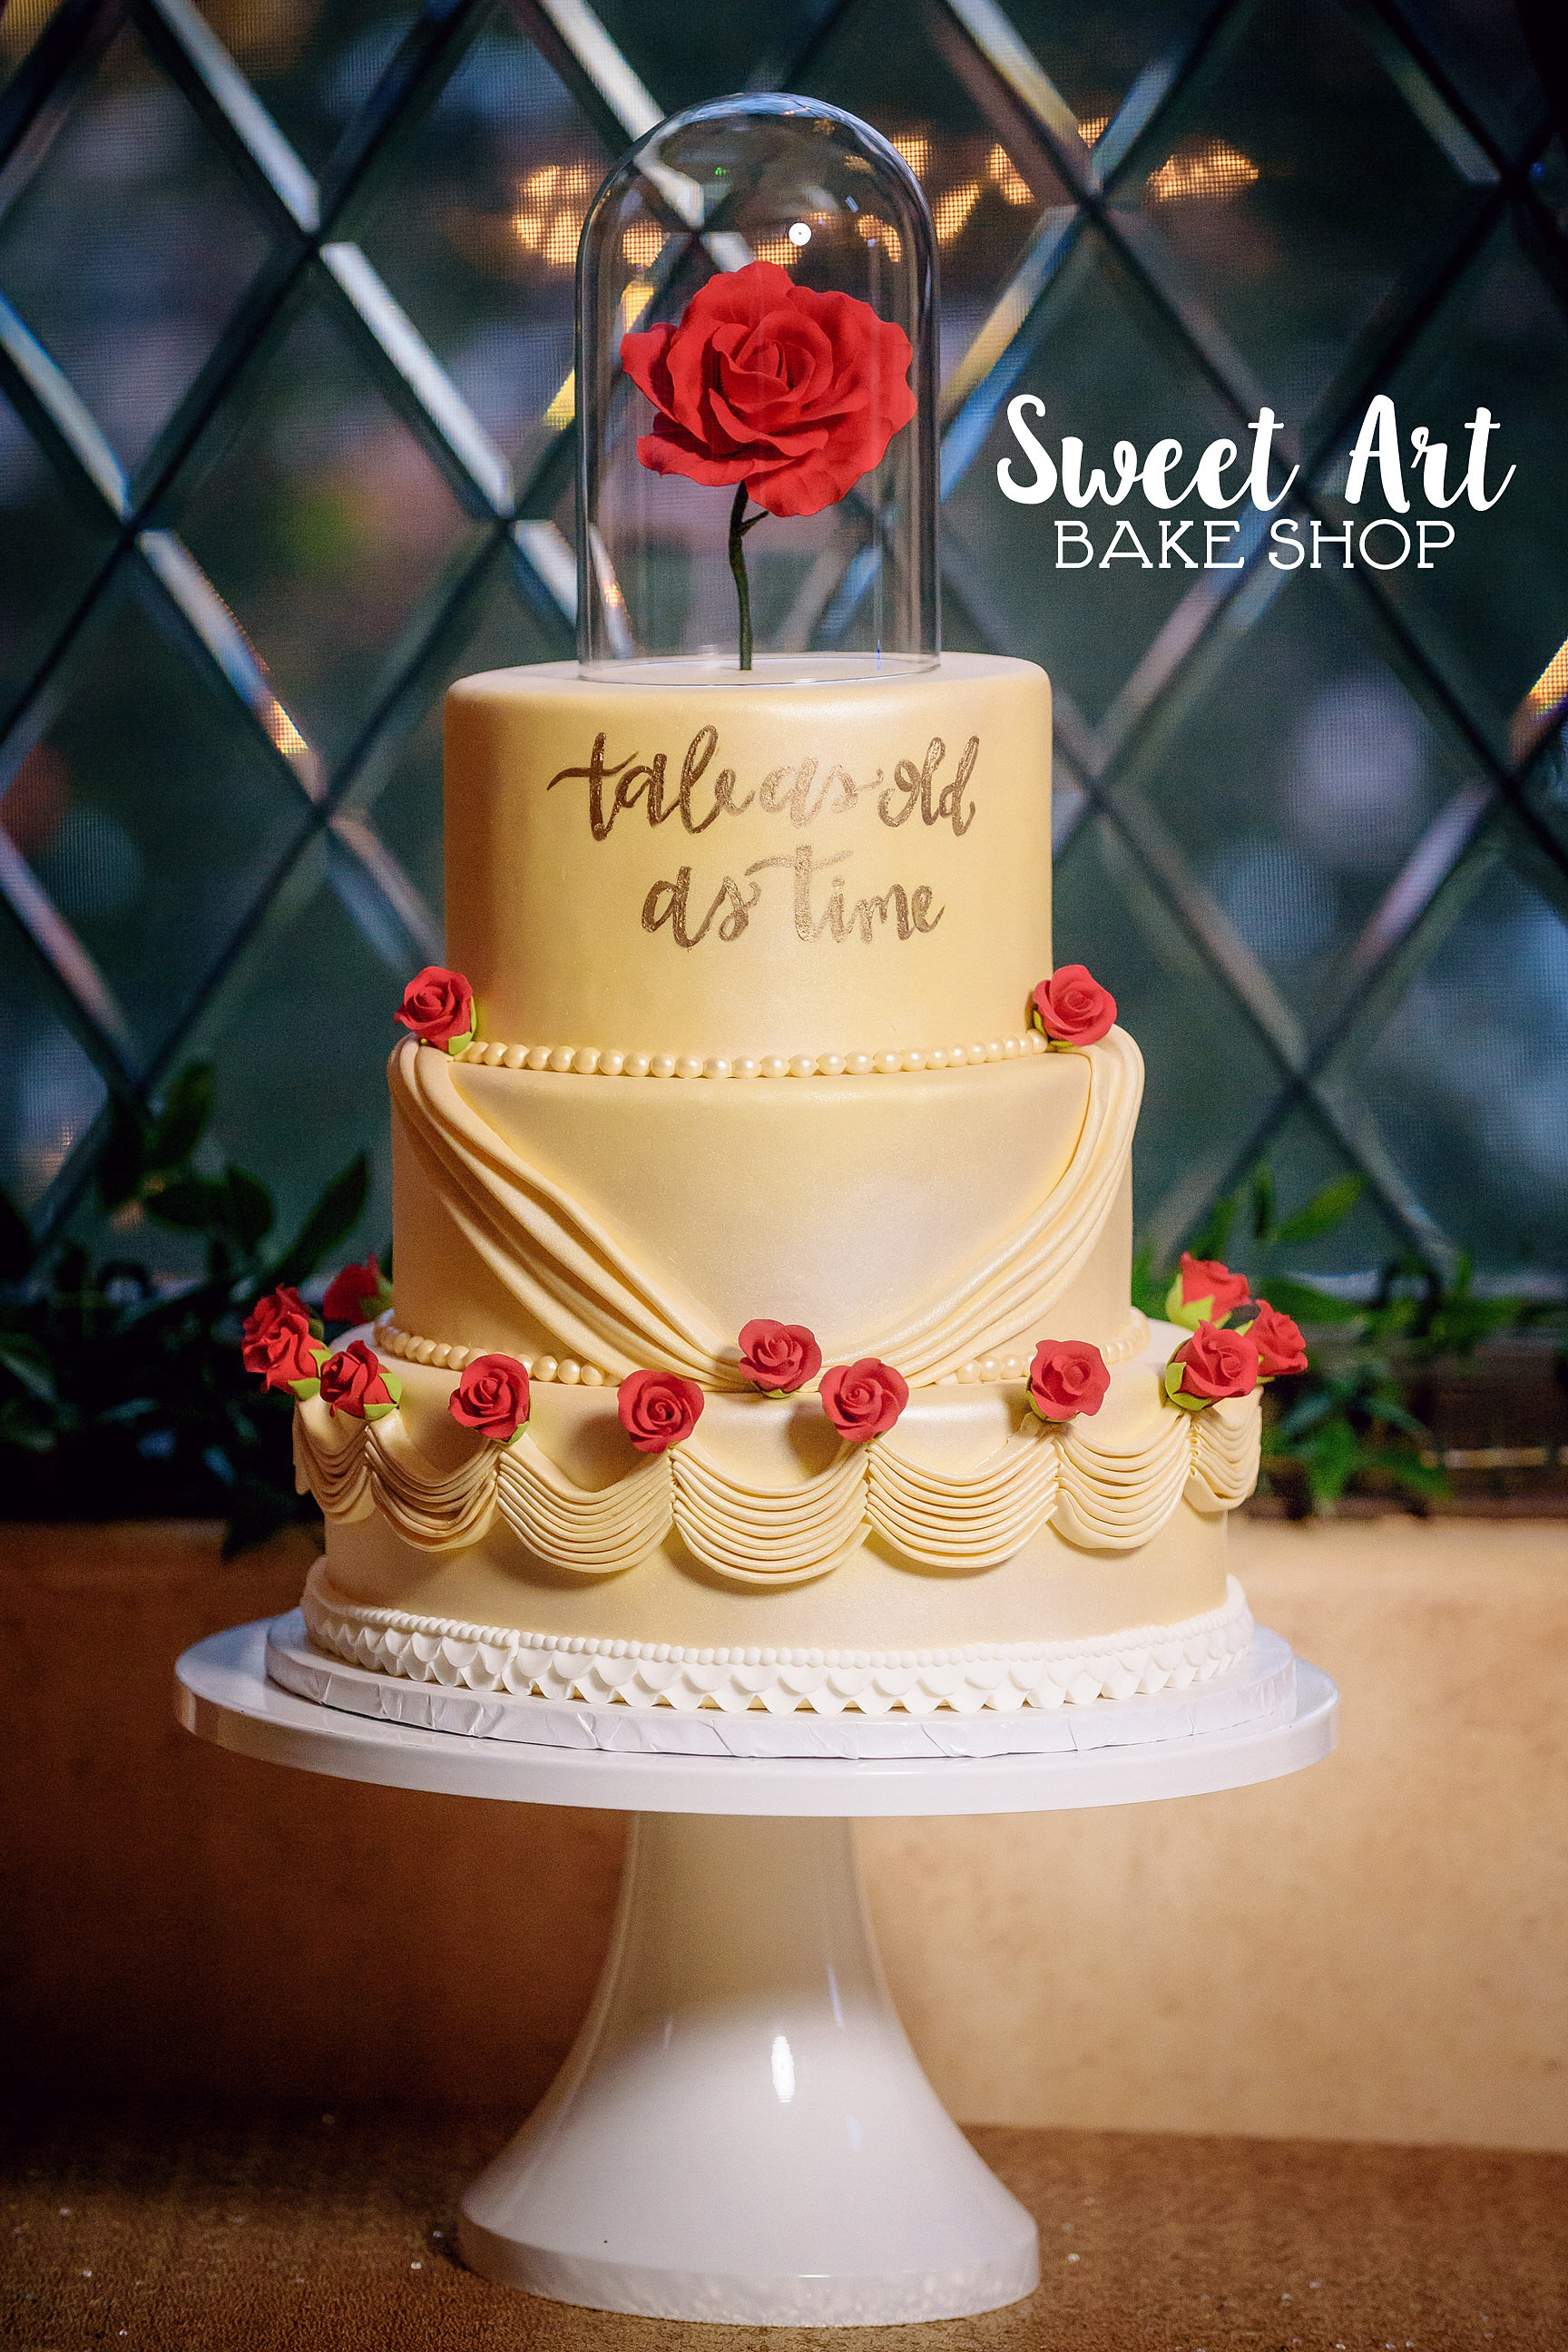 beauty and the beast wedding cake | My Web Value